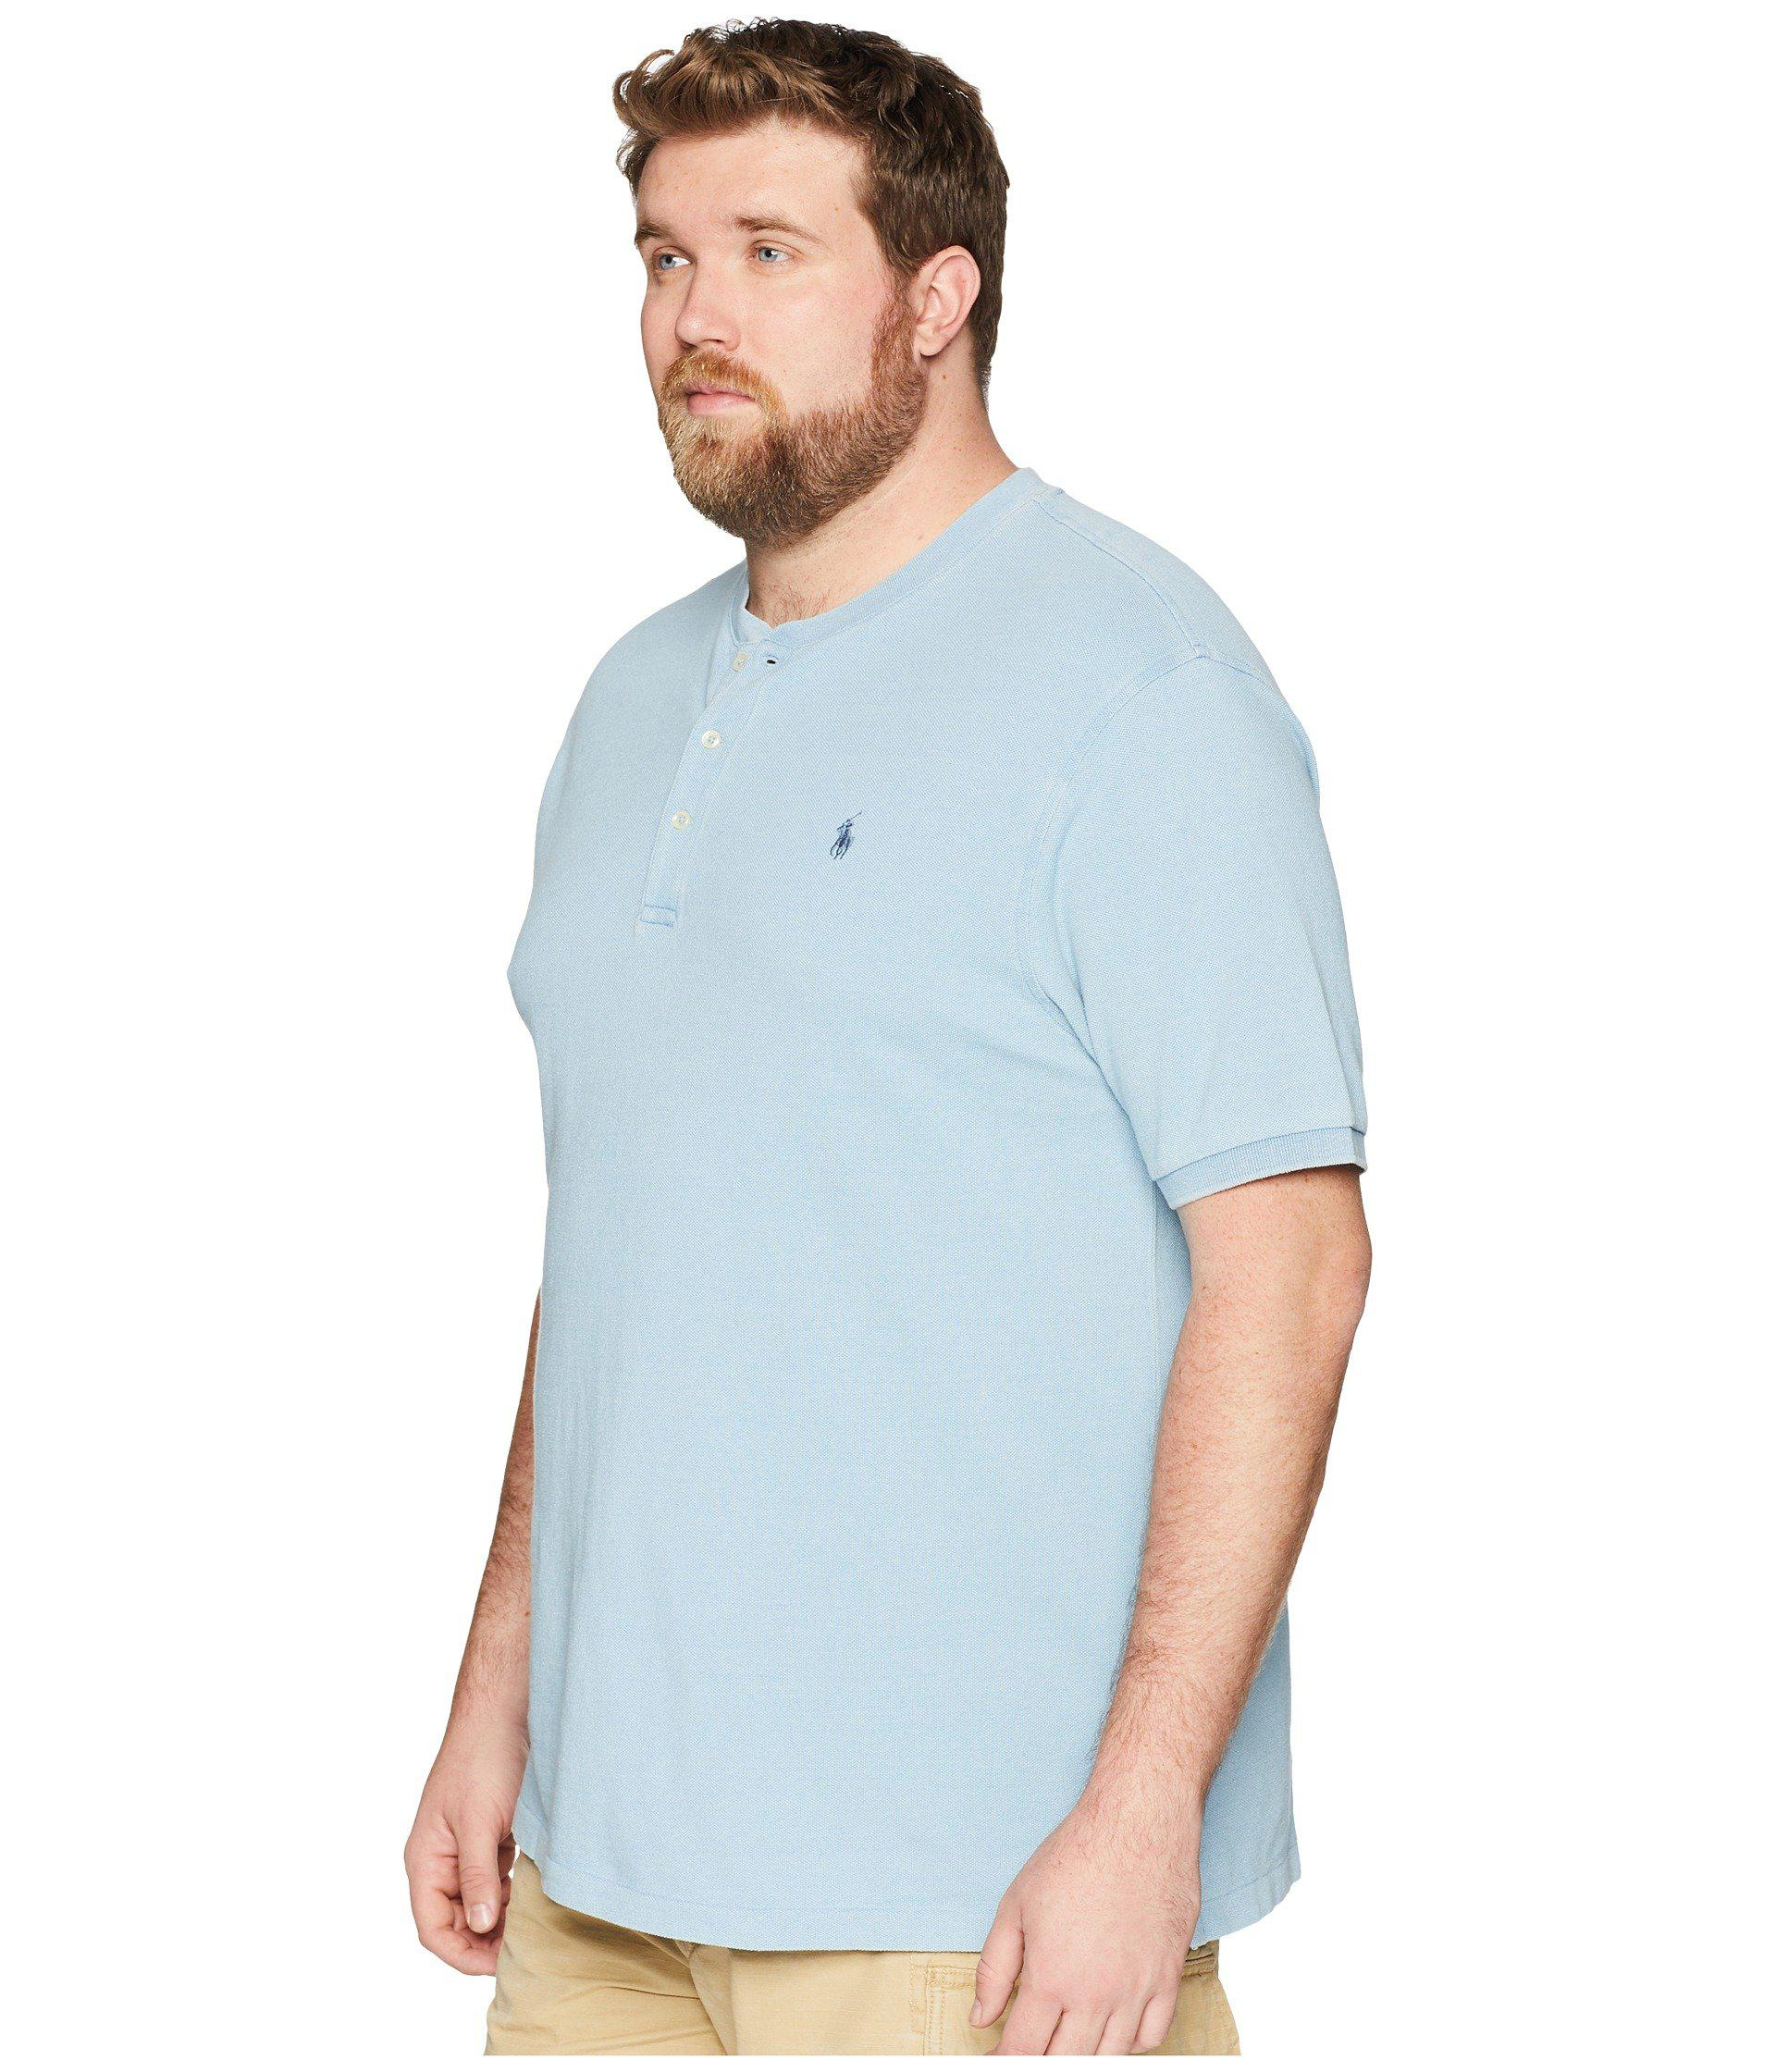 38a37aff9 Lyst - Polo Ralph Lauren Big & Tall Featherweight Mesh Short Sleeve Knit in  Blue for Men - Save 54.23728813559322%